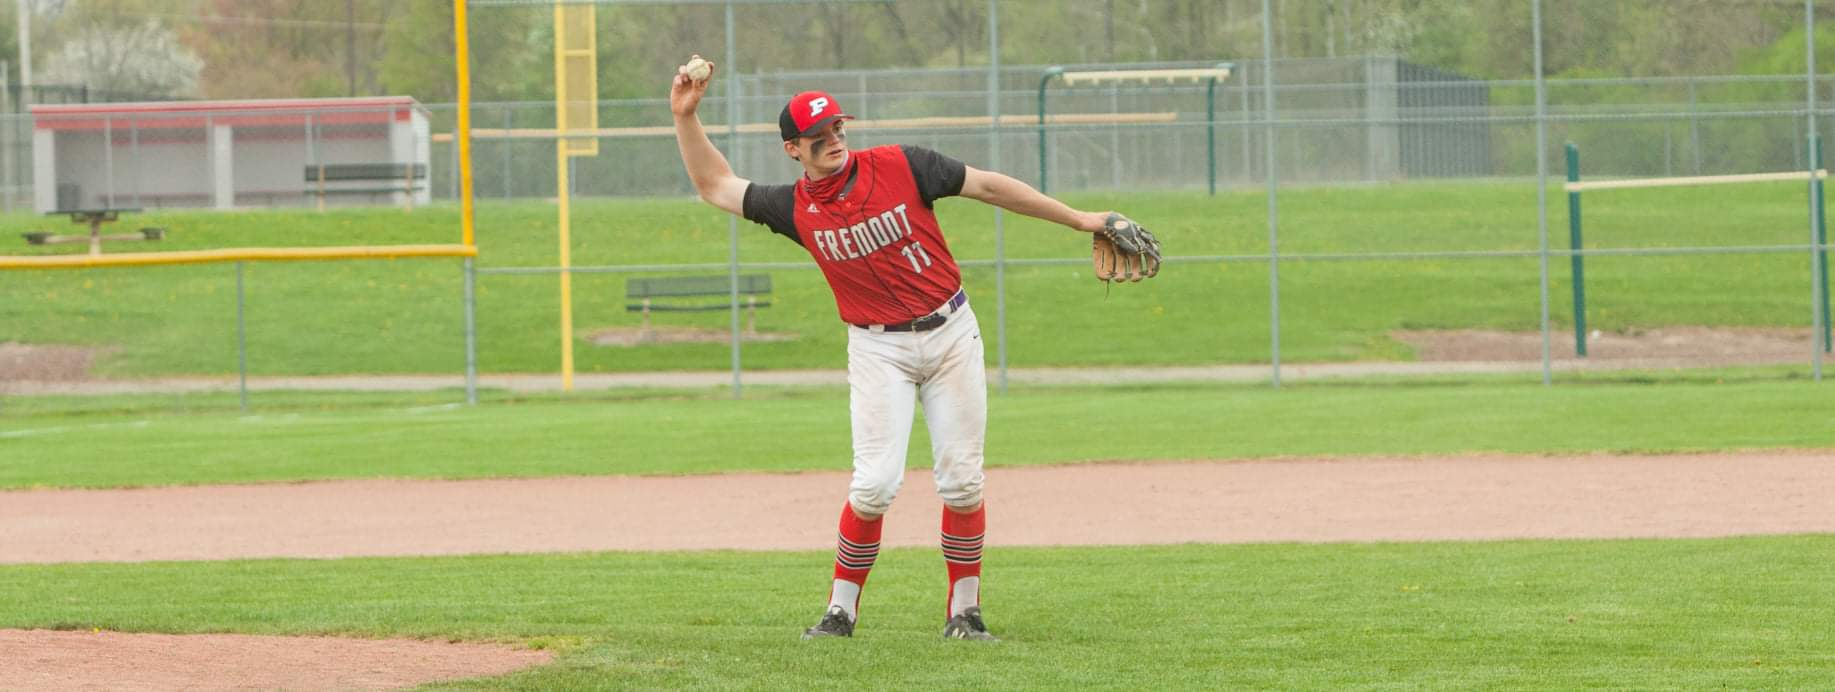 Big arm, big bat: Fremont's Payton Mansfield leads area pitchers in strikeouts and area hitters in homers and RBIs